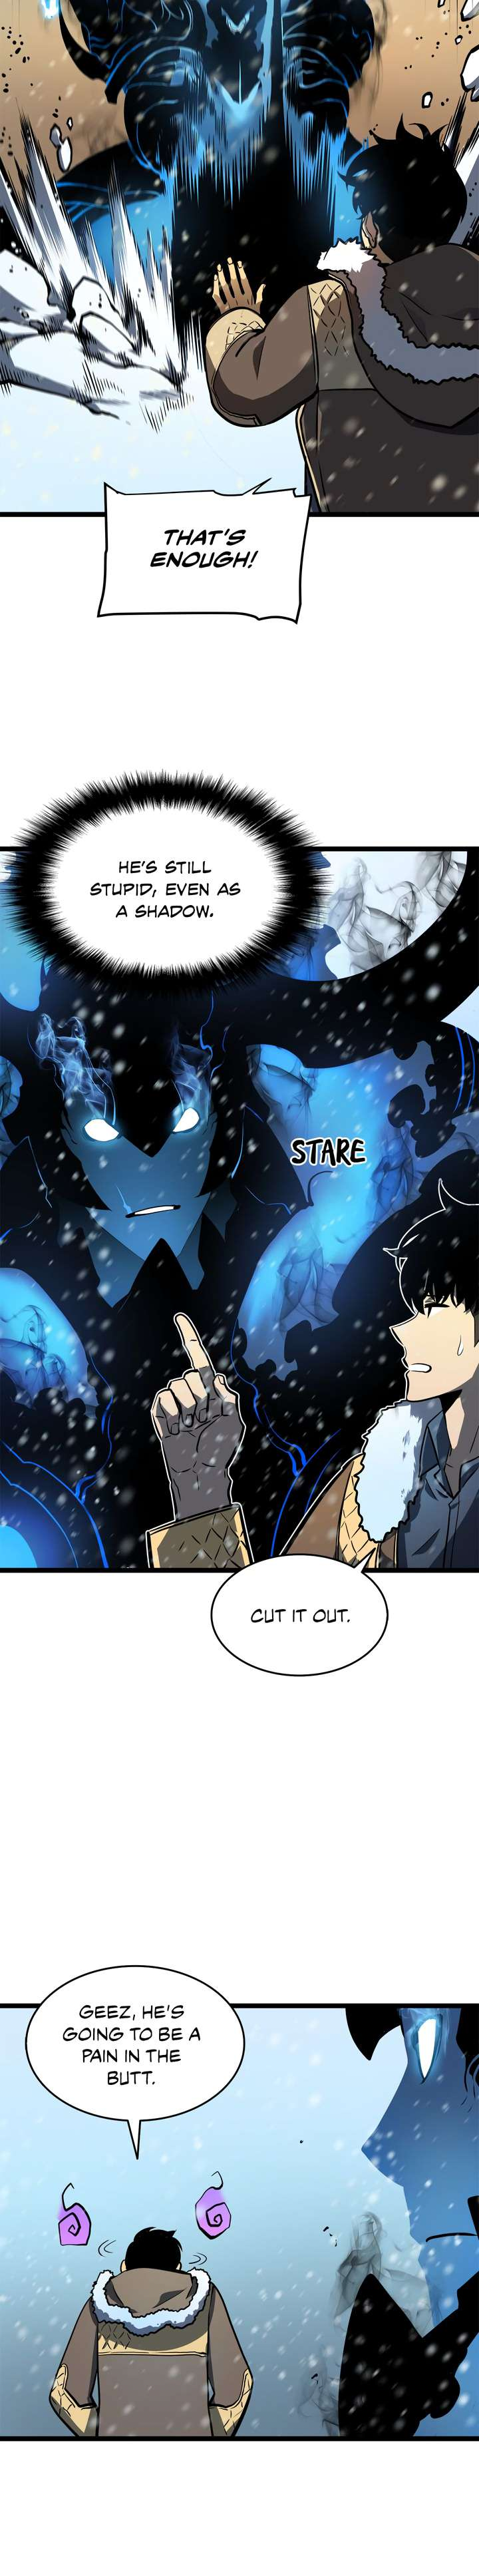 Solo Leveling Chapter 54 Page 26